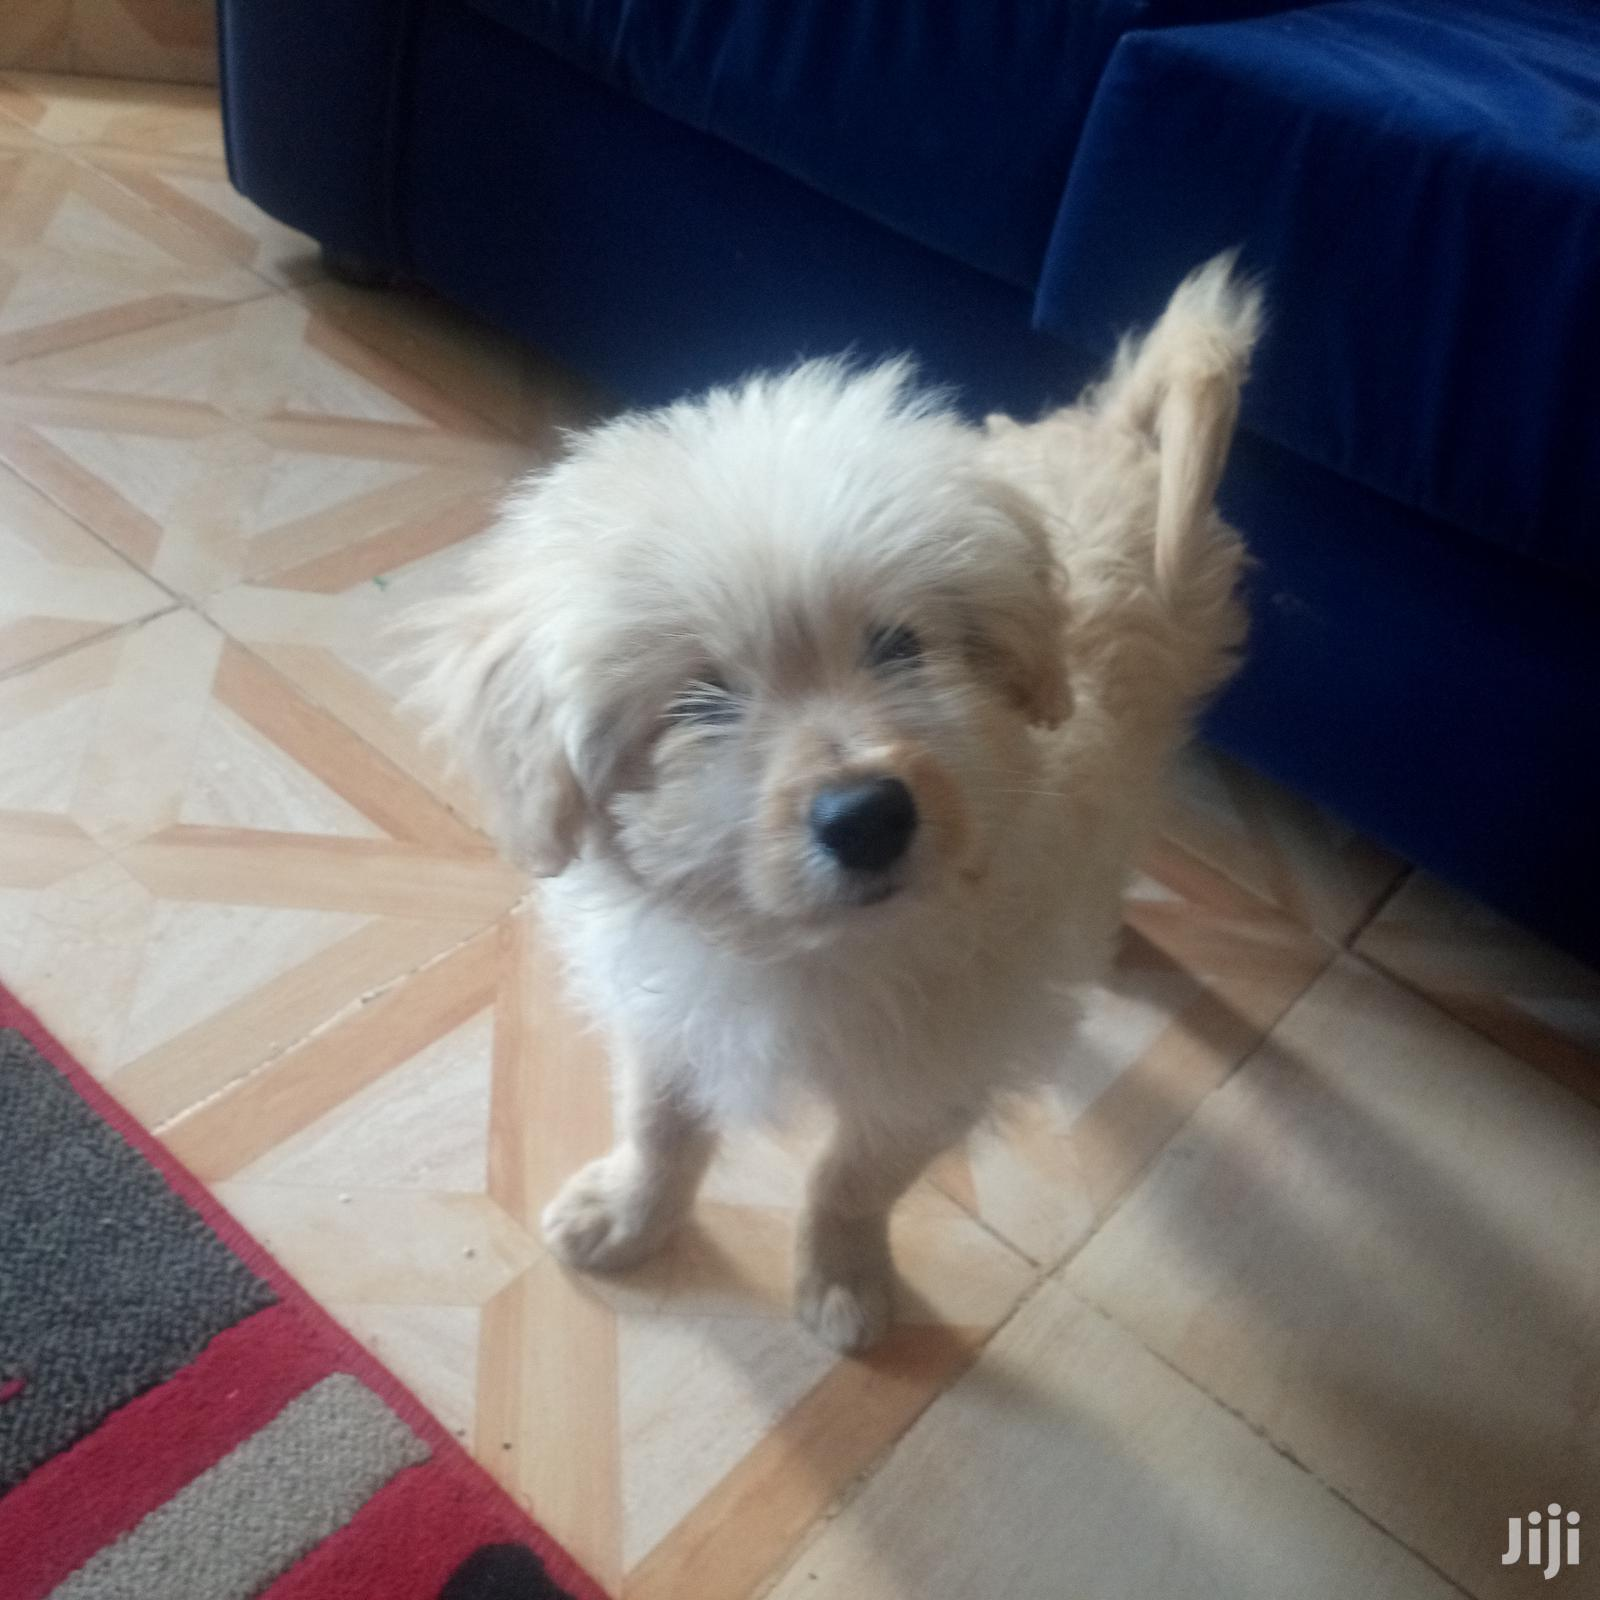 Archive: 6-12 Month Male Purebred Maltese